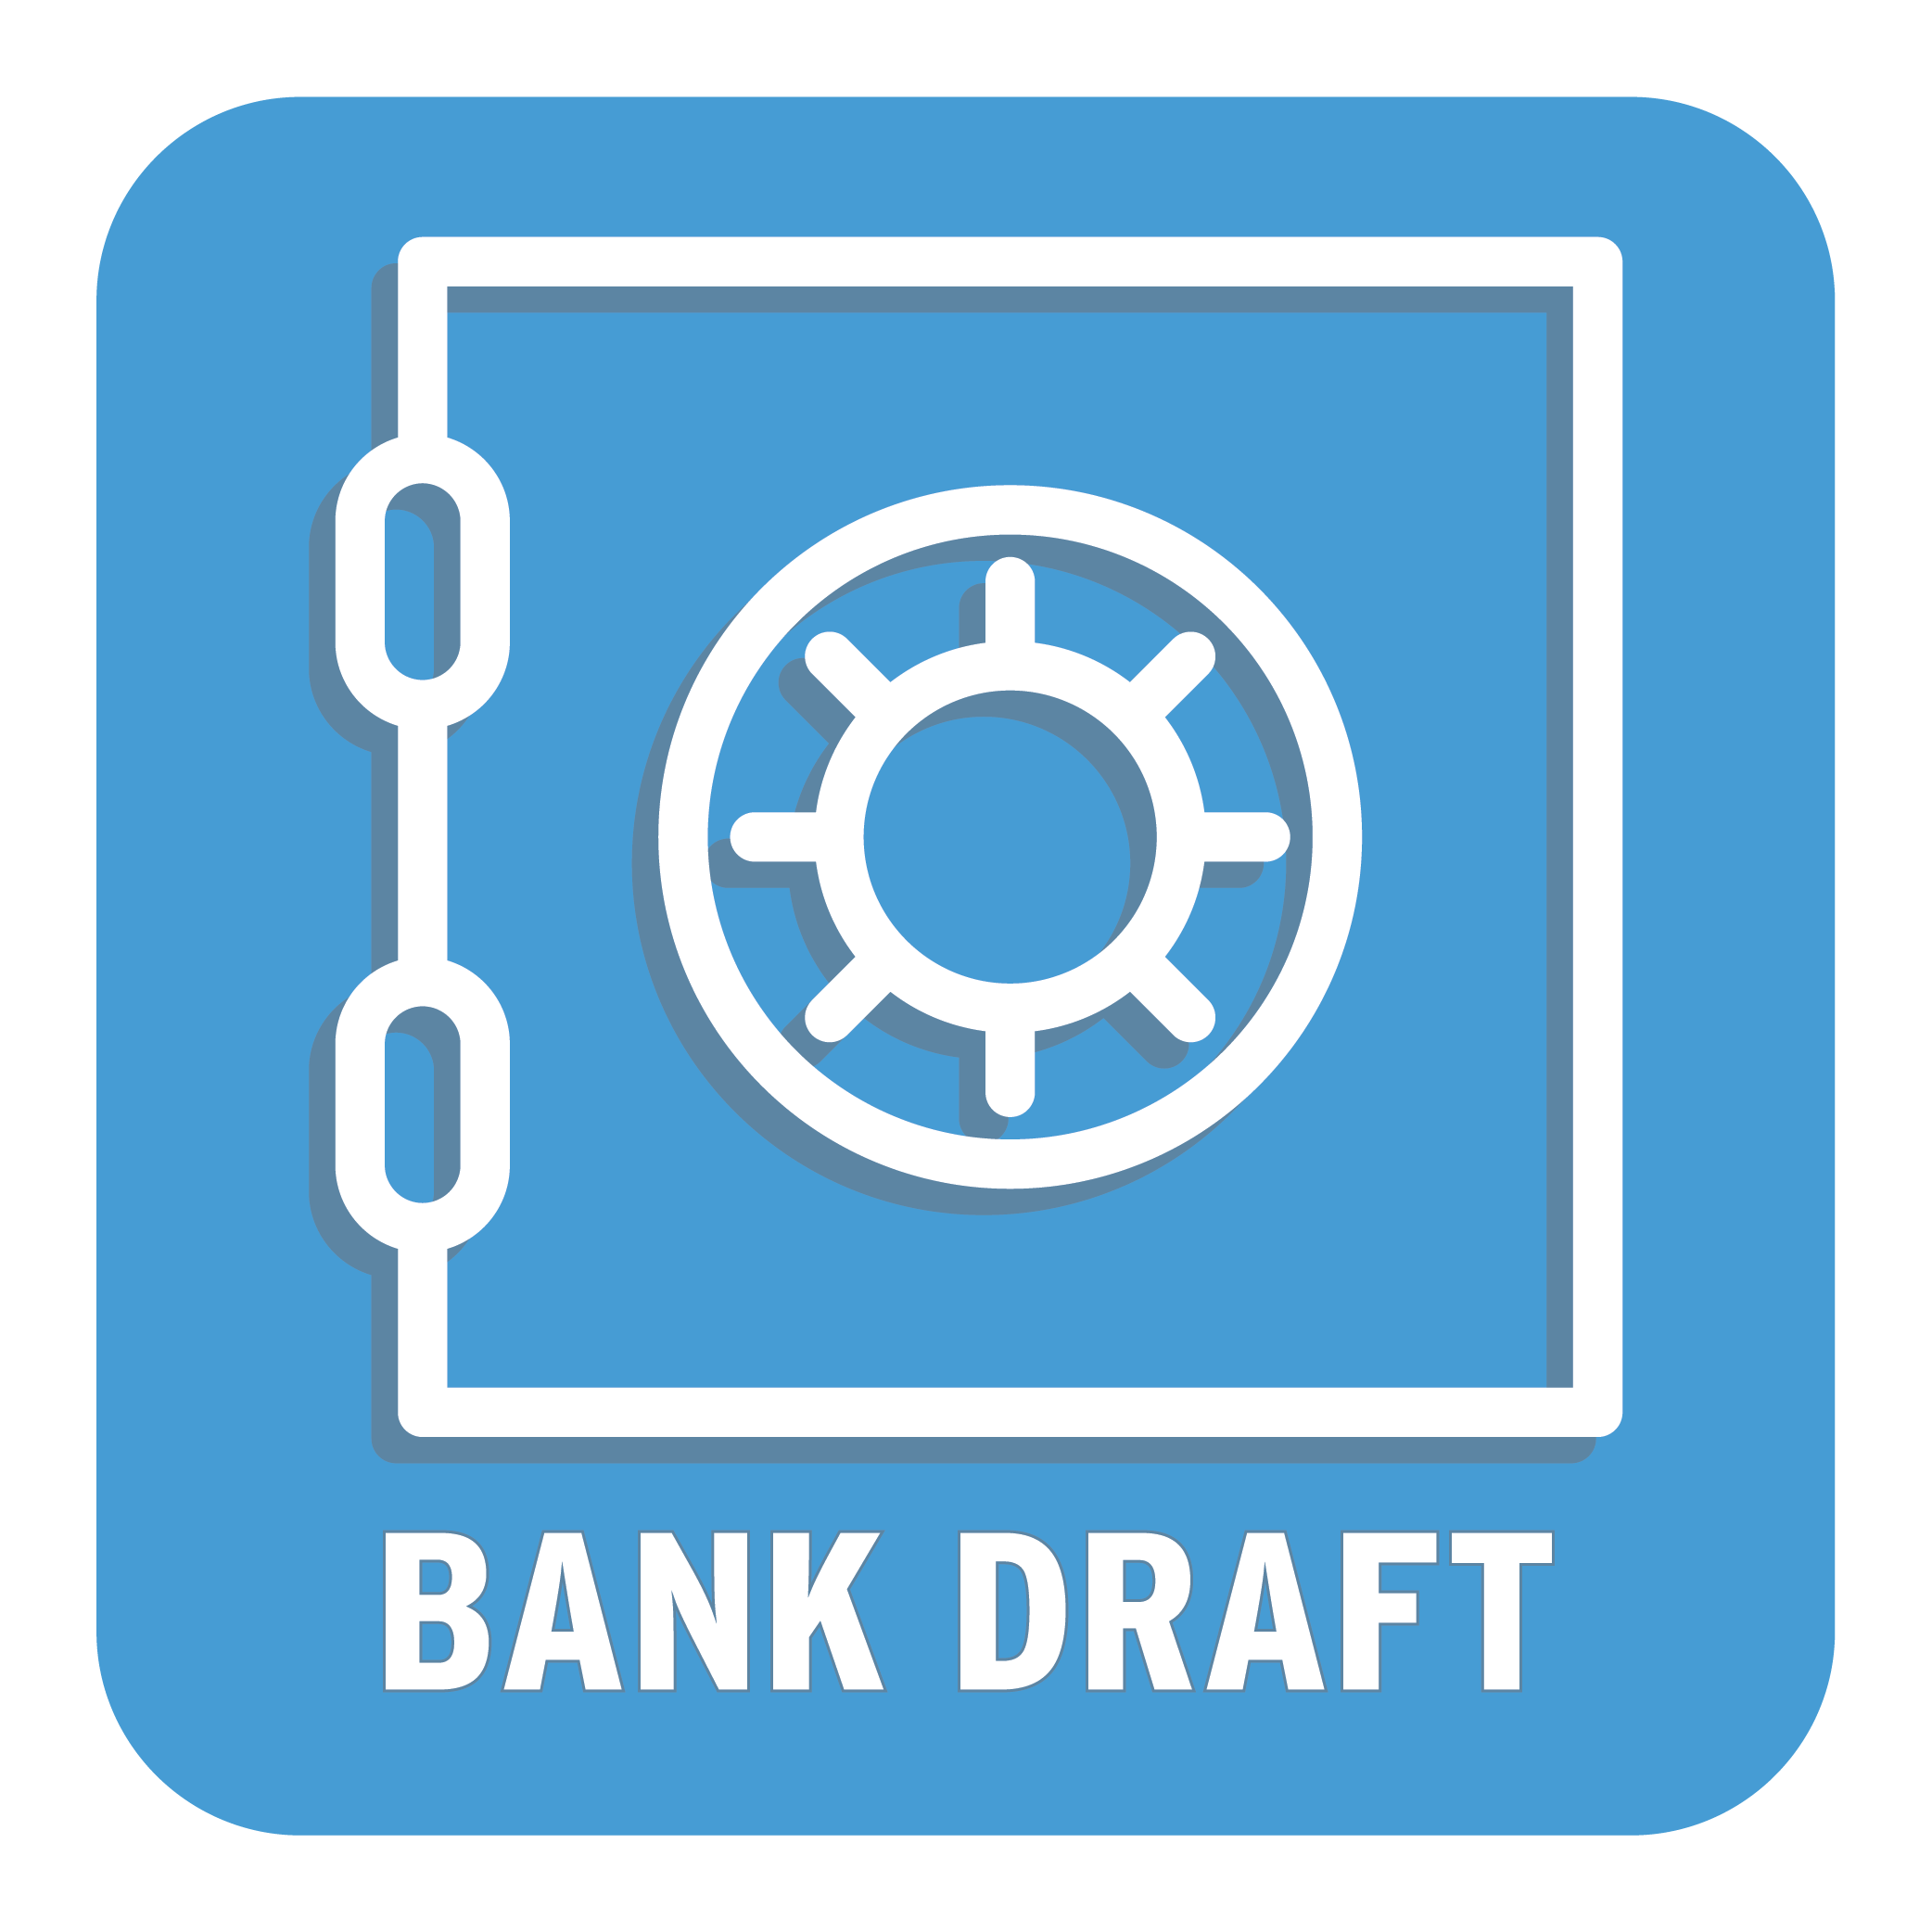 How to Give (Bank Draft)